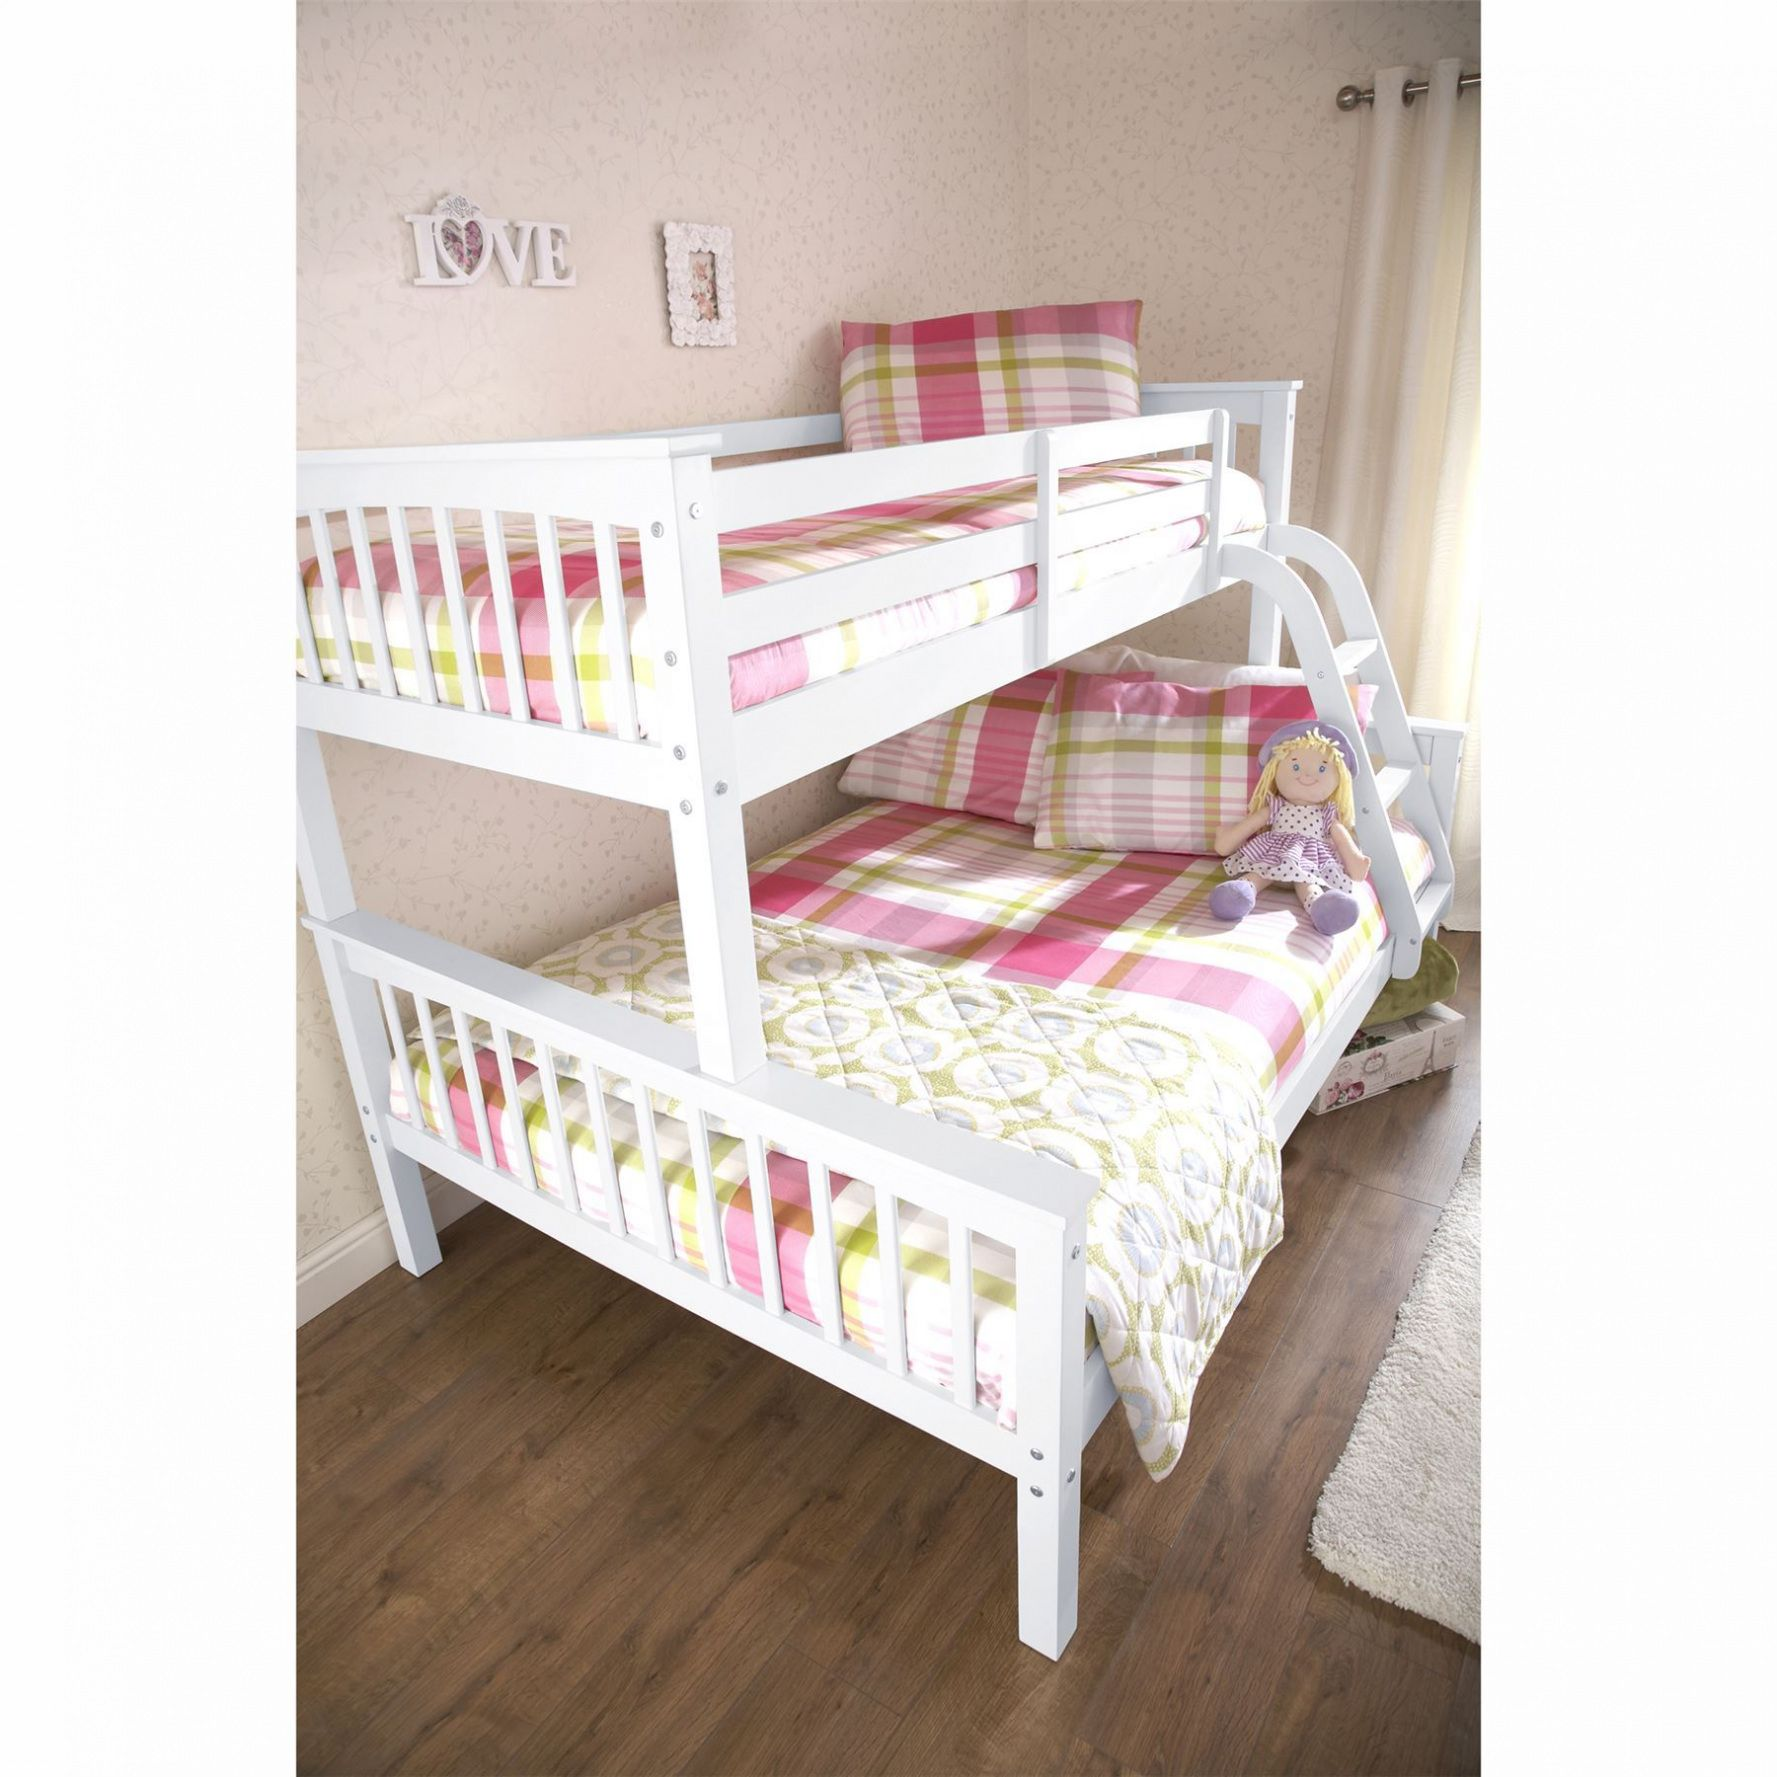 50 Bunk Beds For Sale On Ebay Interior Design Small Bedroom Check